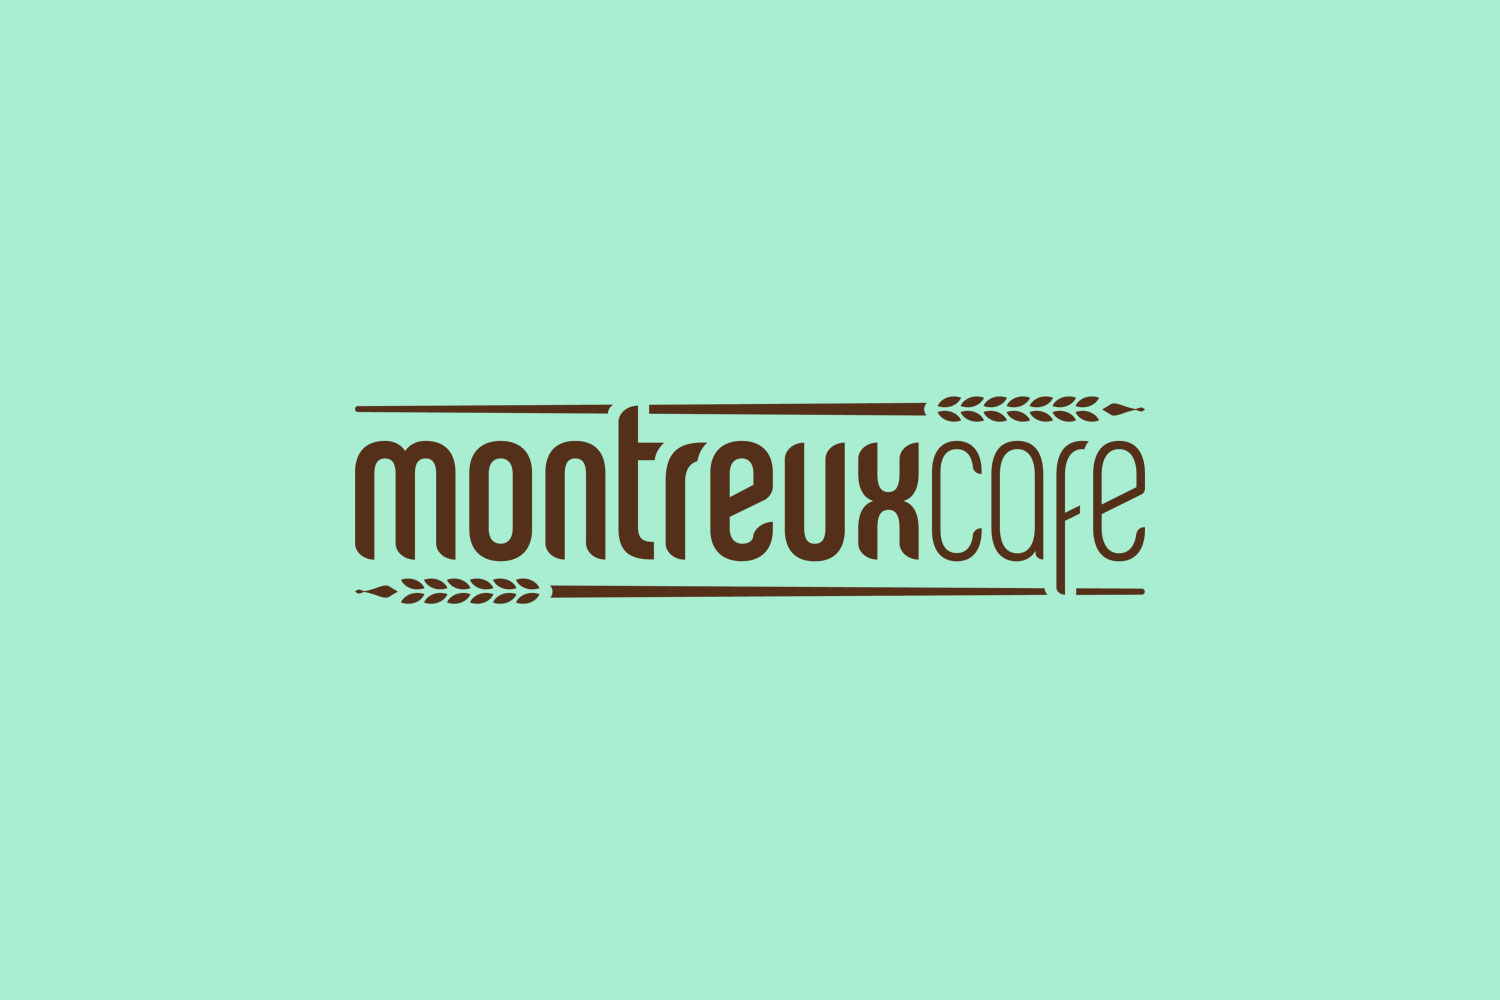 Montreux Café SG branding identity design - Corporate identity word mark design by Singapore based brand strategy and creative design consultancy, BÜRO UFHO.